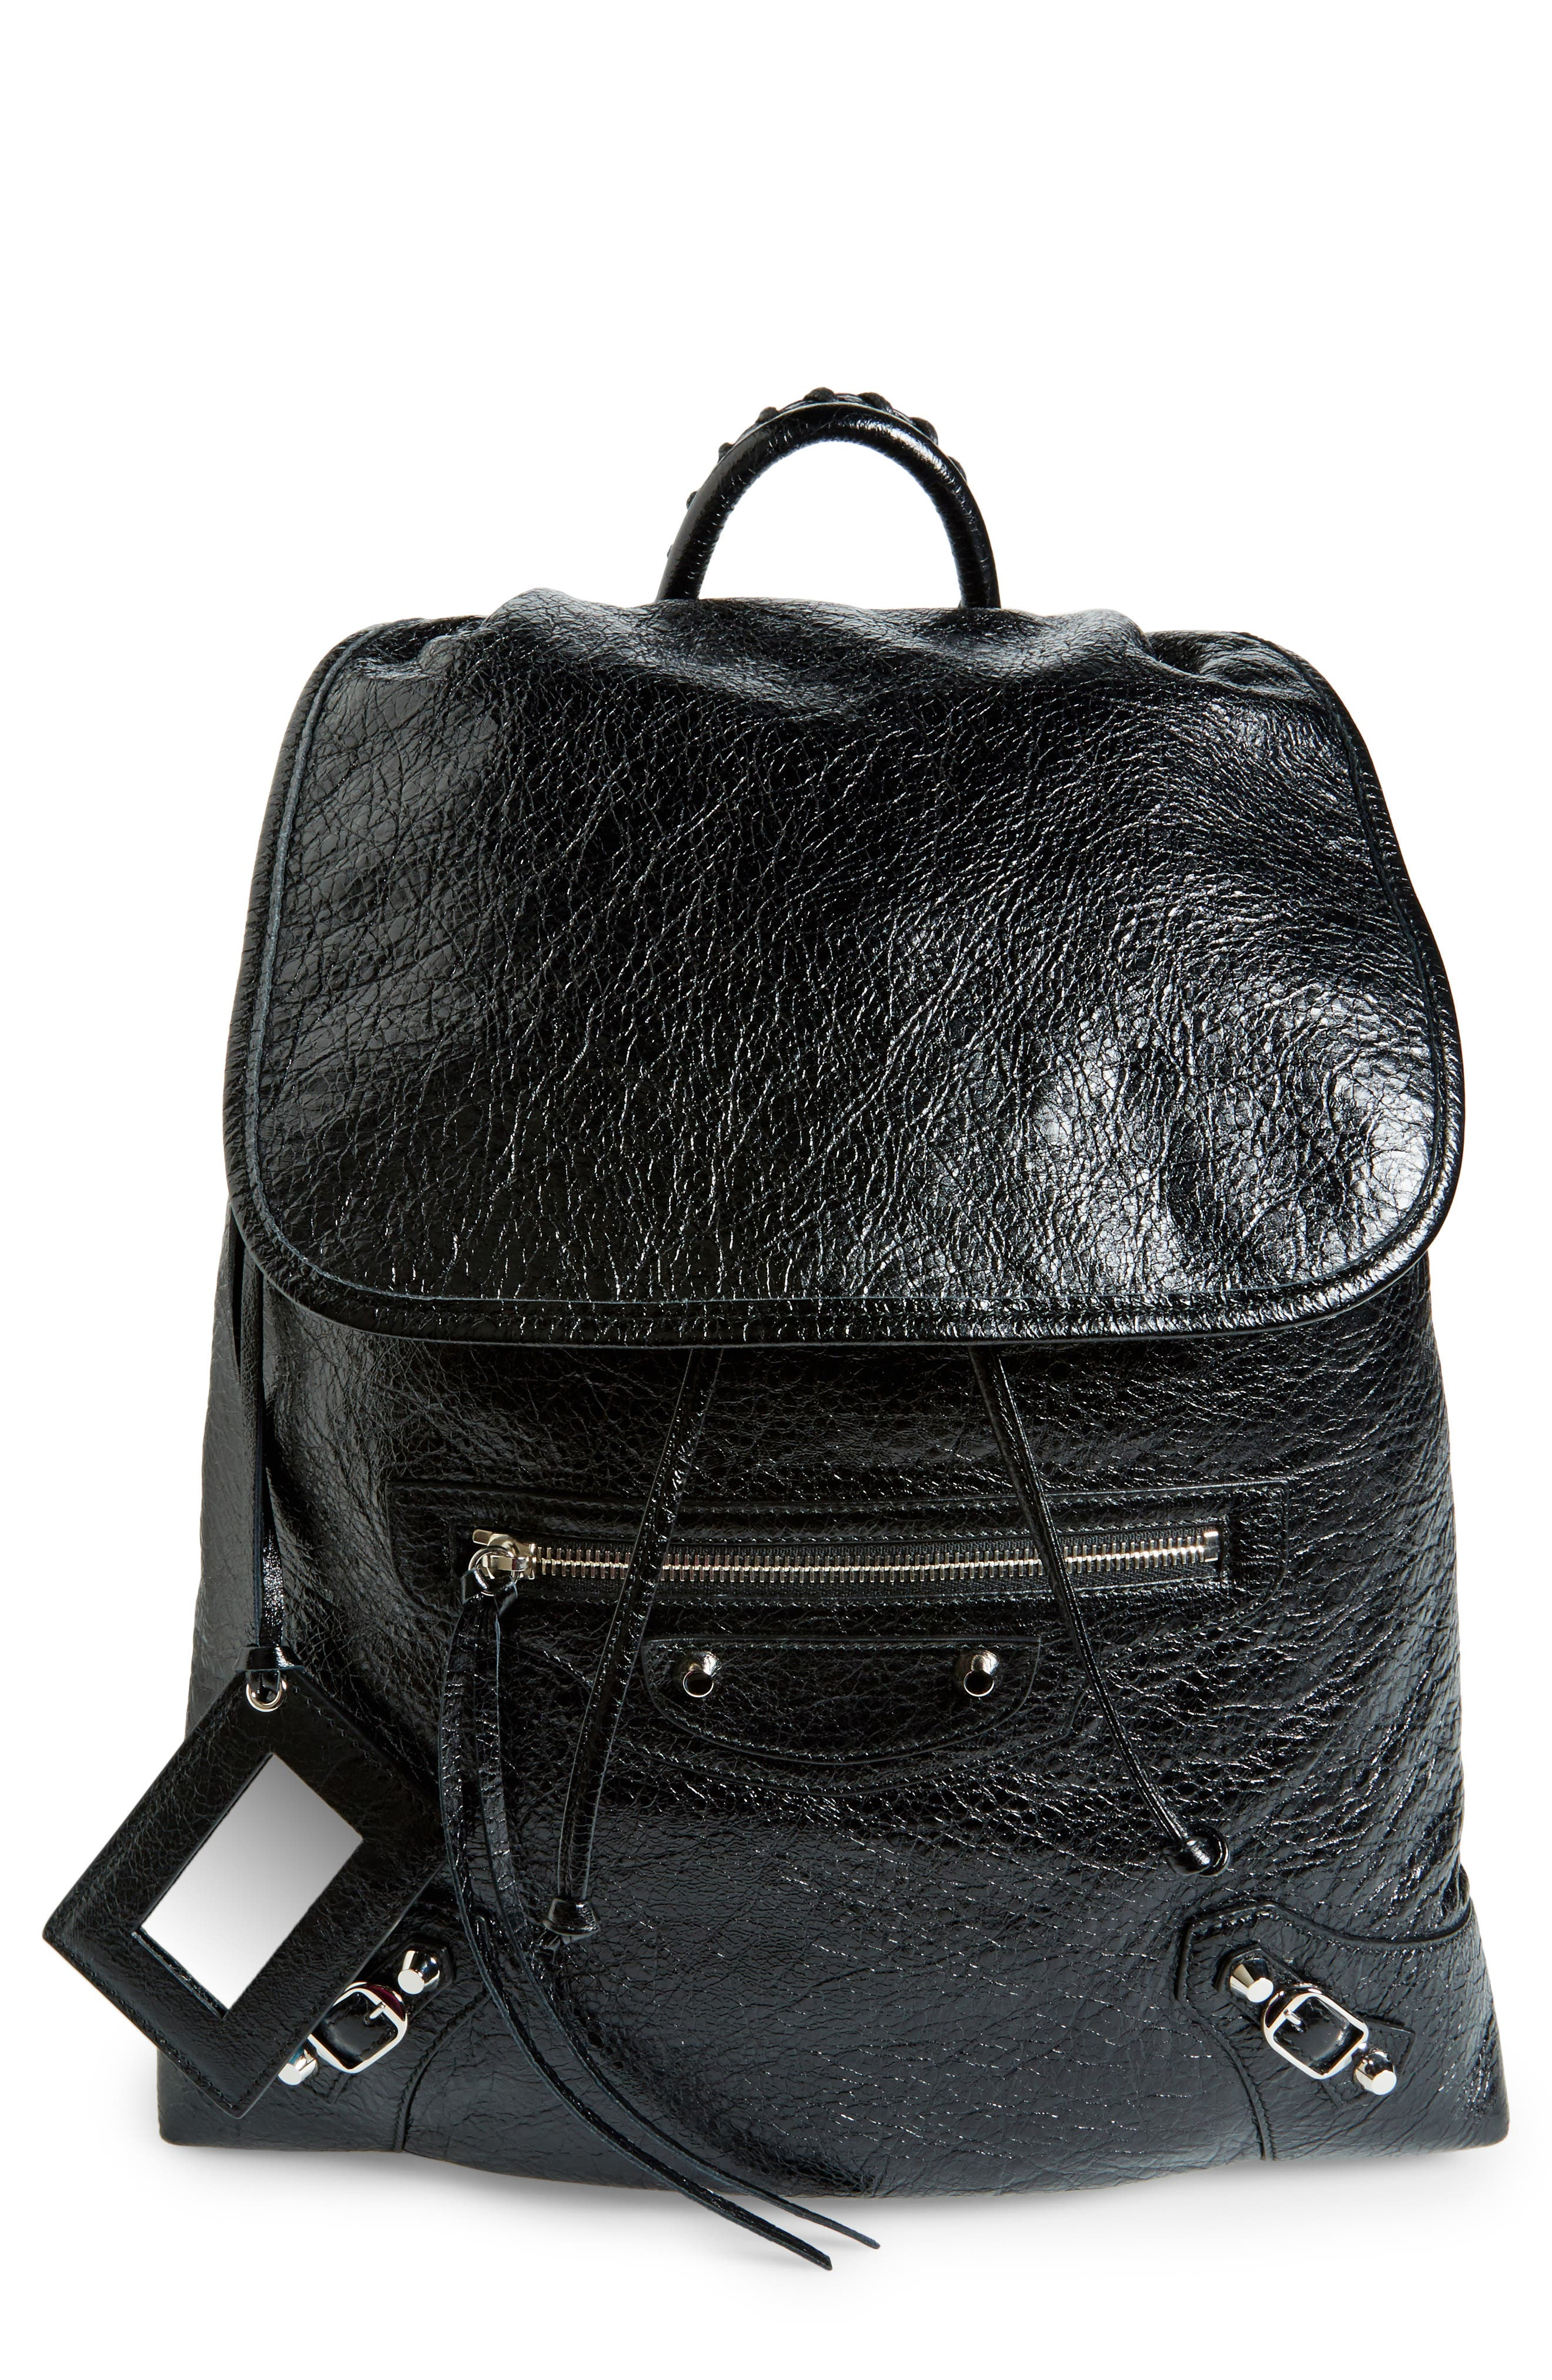 Balenciaga Small Classic Traveller Lambskin Leather Backpack